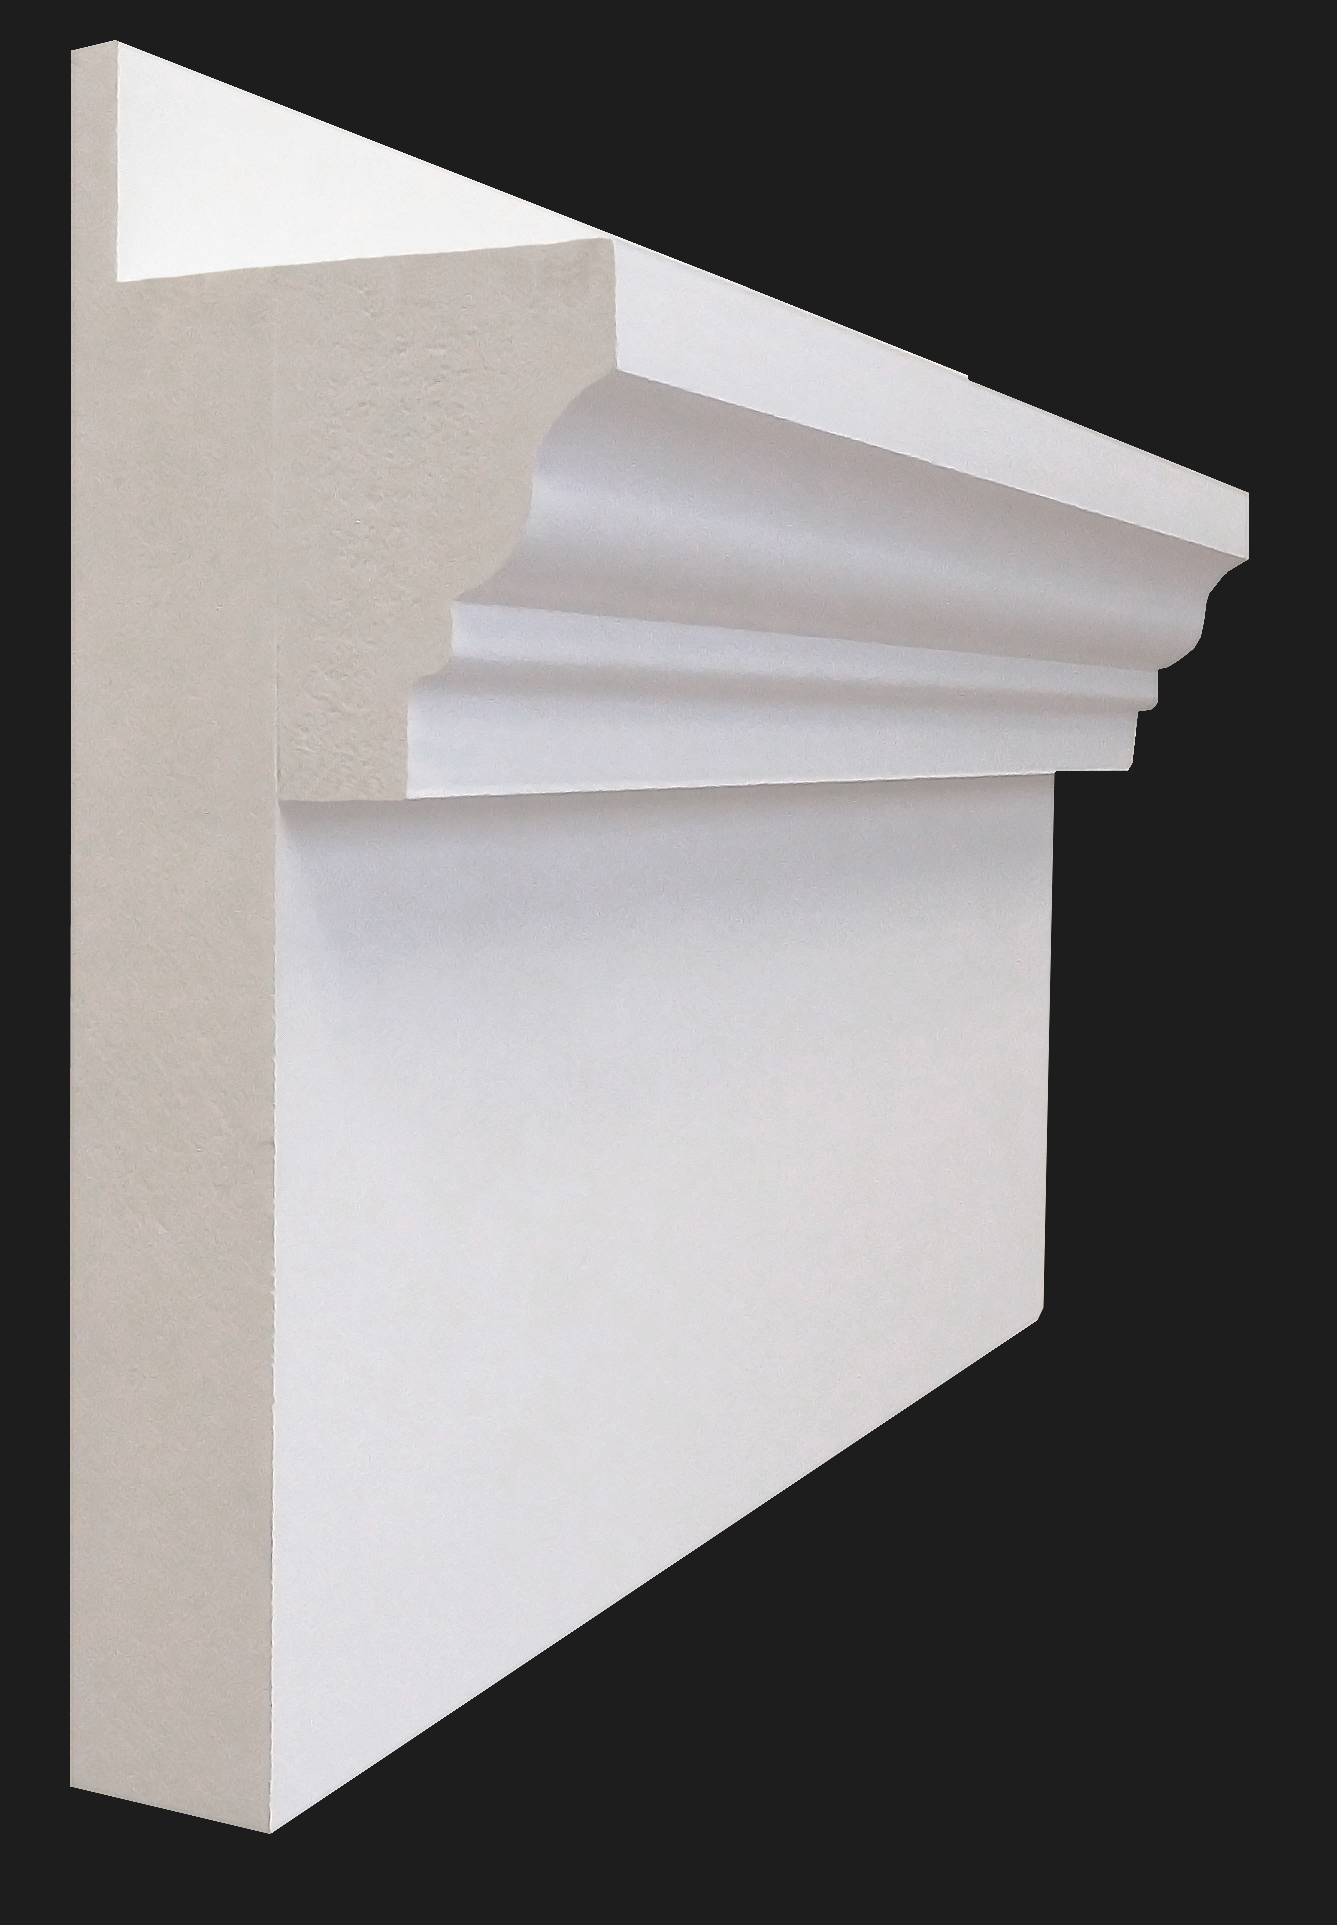 VERSATEX Introduces PVC Crosshead Pediment Moulding Profile